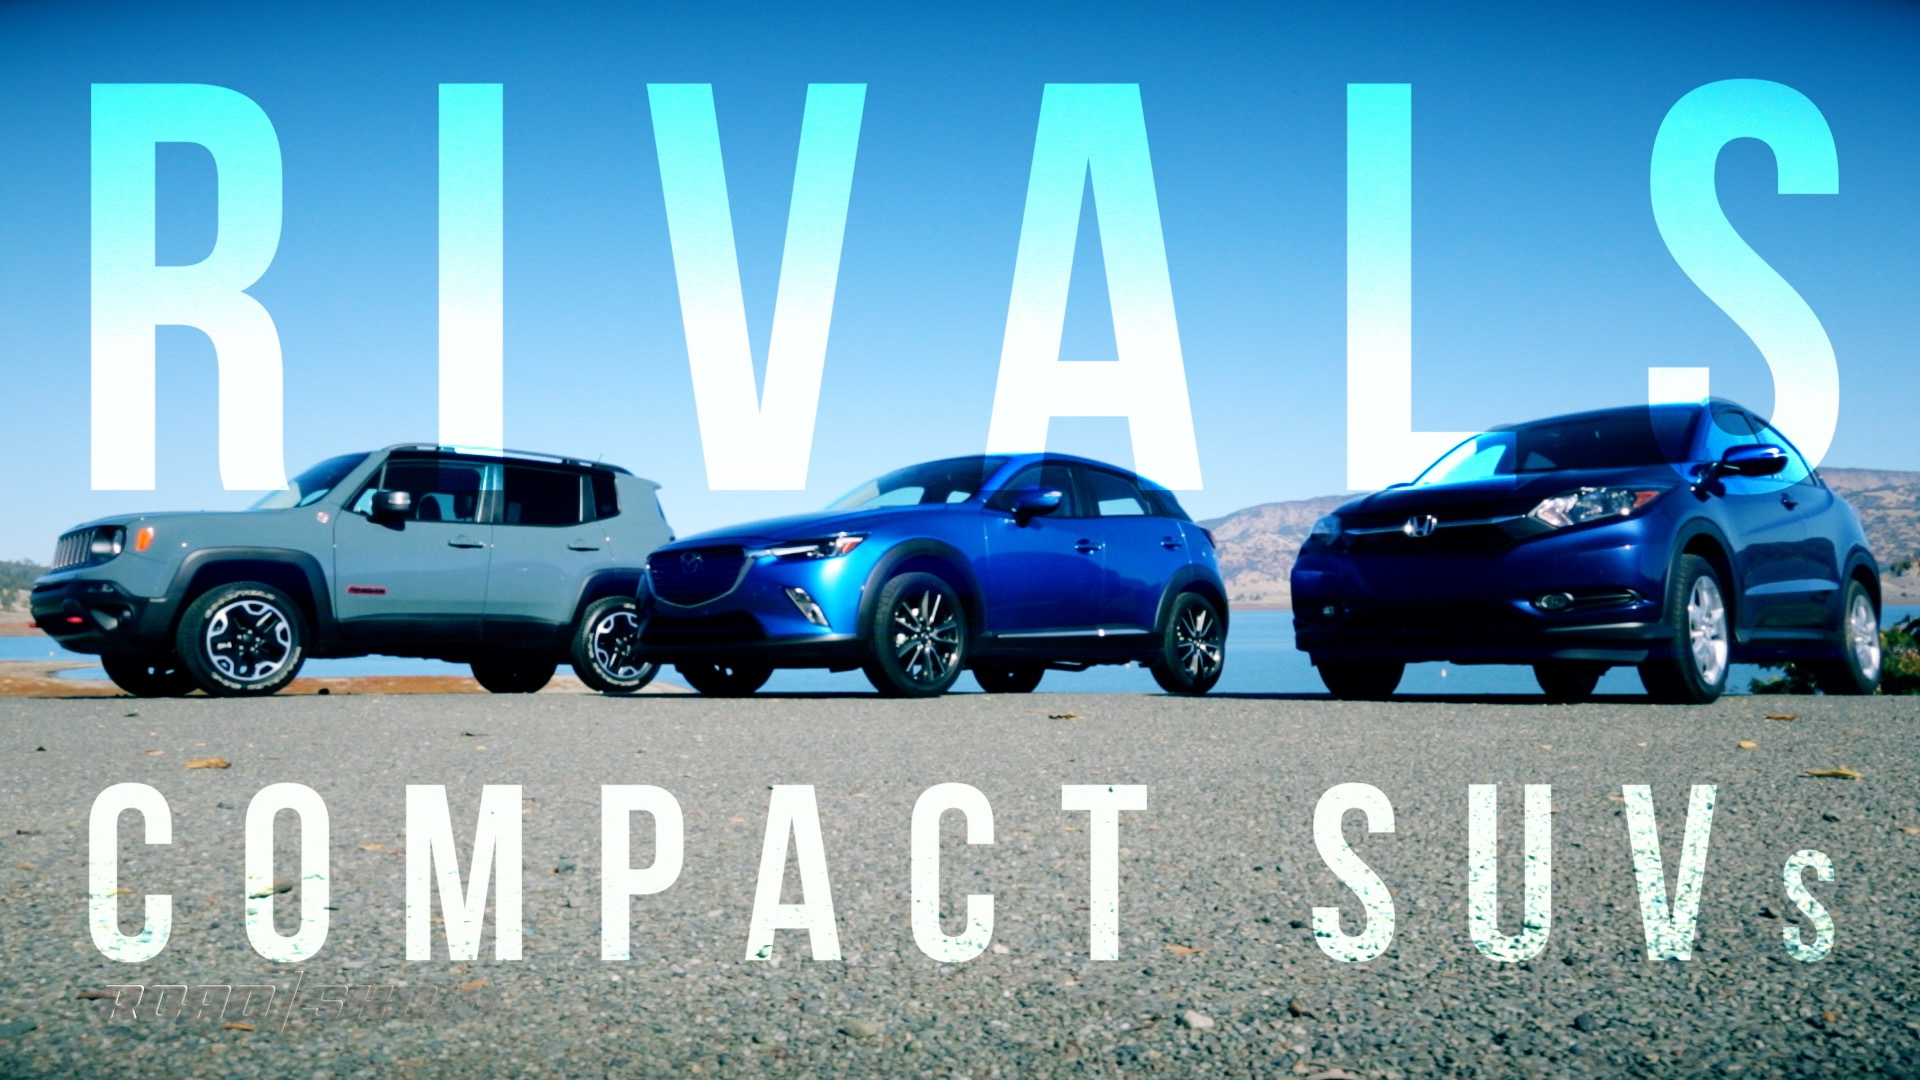 Video: Rivals: One CUV to rule them all